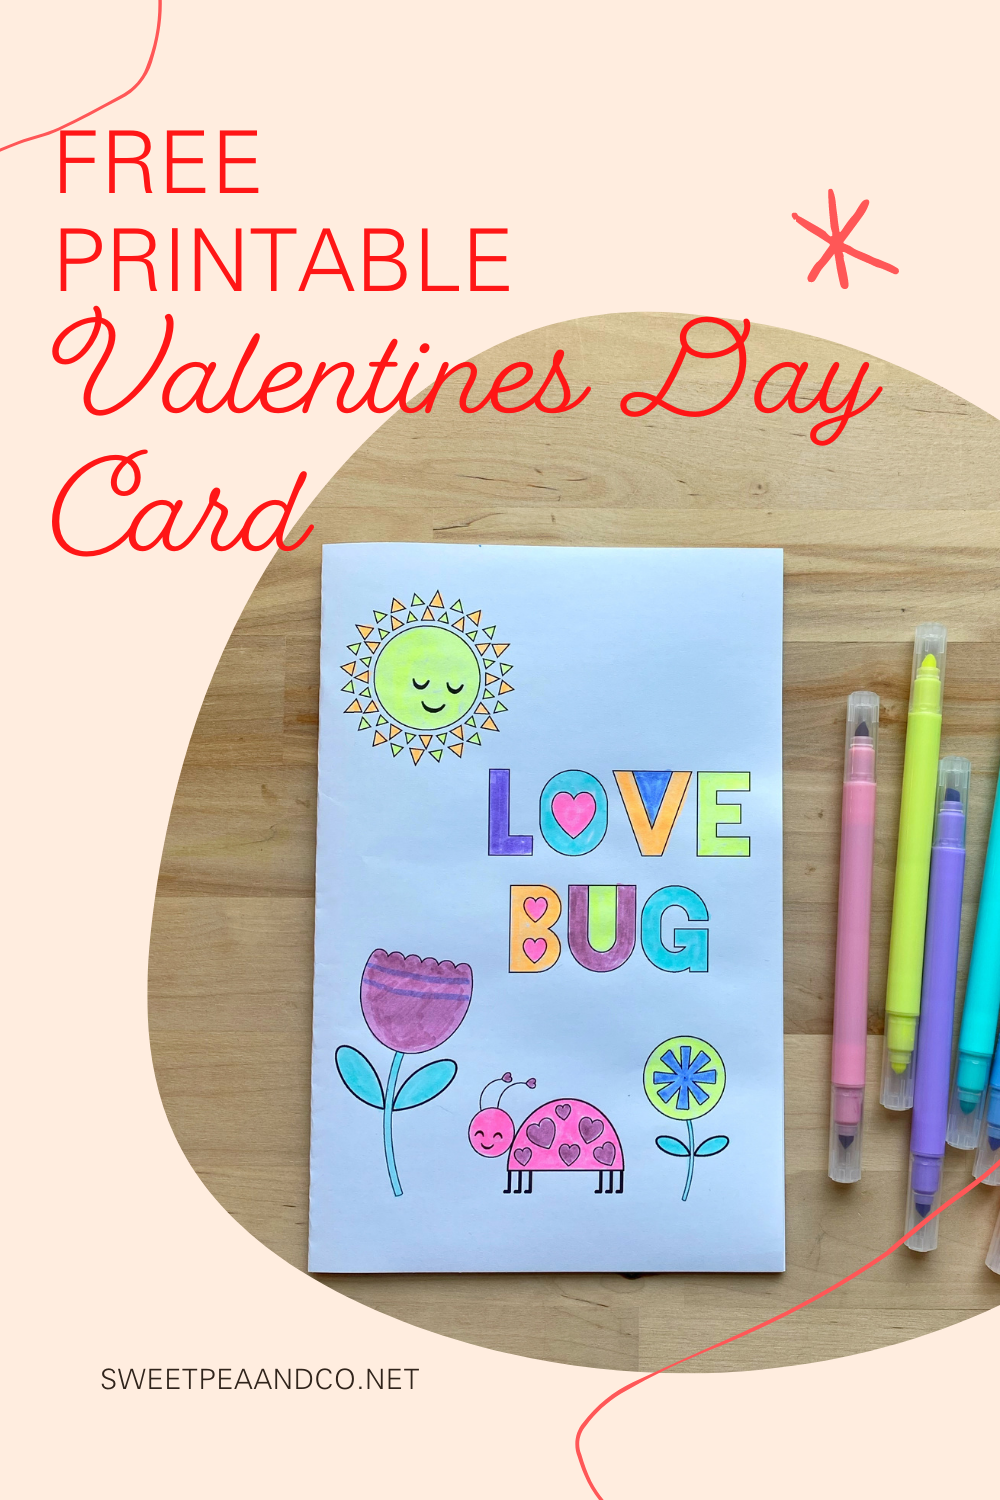 Printable Valentine's Day Card for Kids